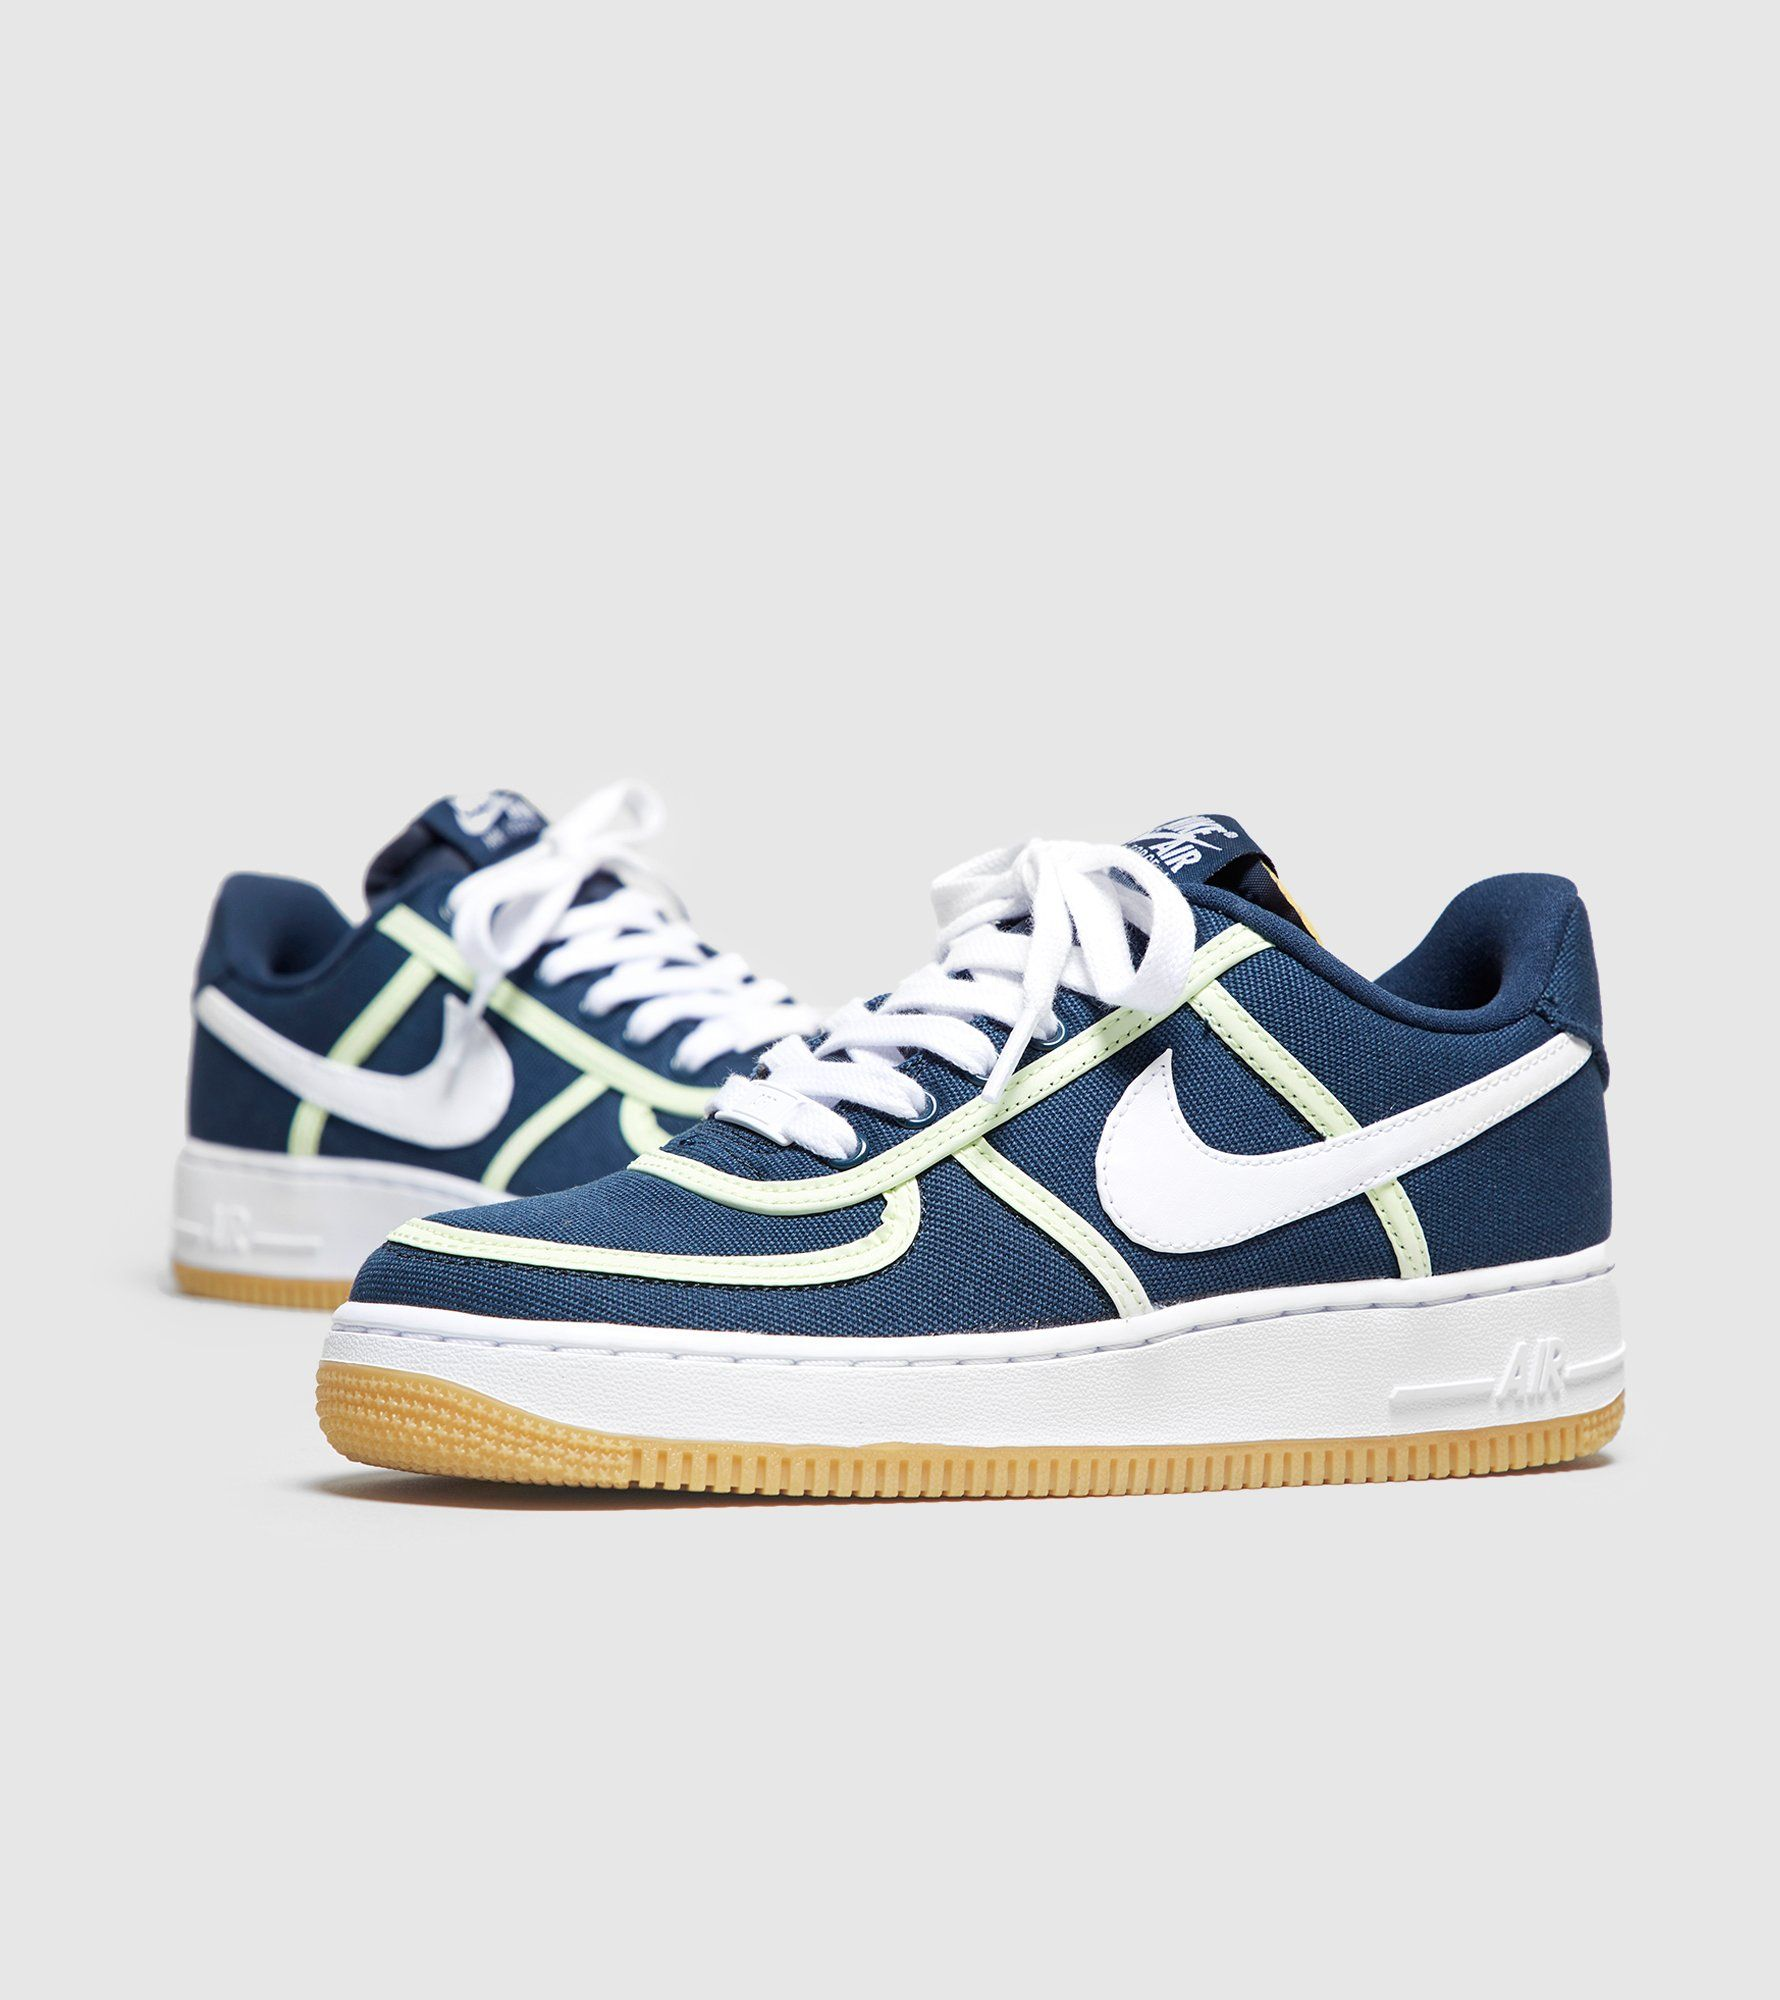 Nike Air Force 1 '07 Premium Women's